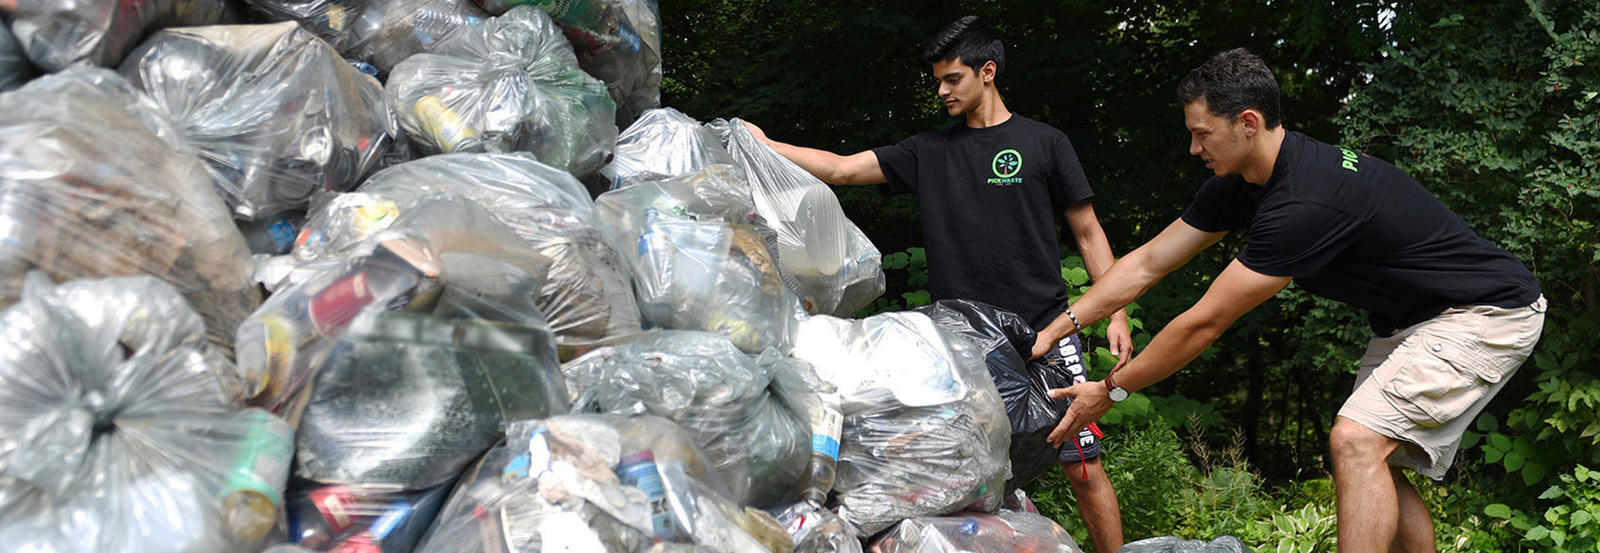 Pickwaste founders picking up garbage